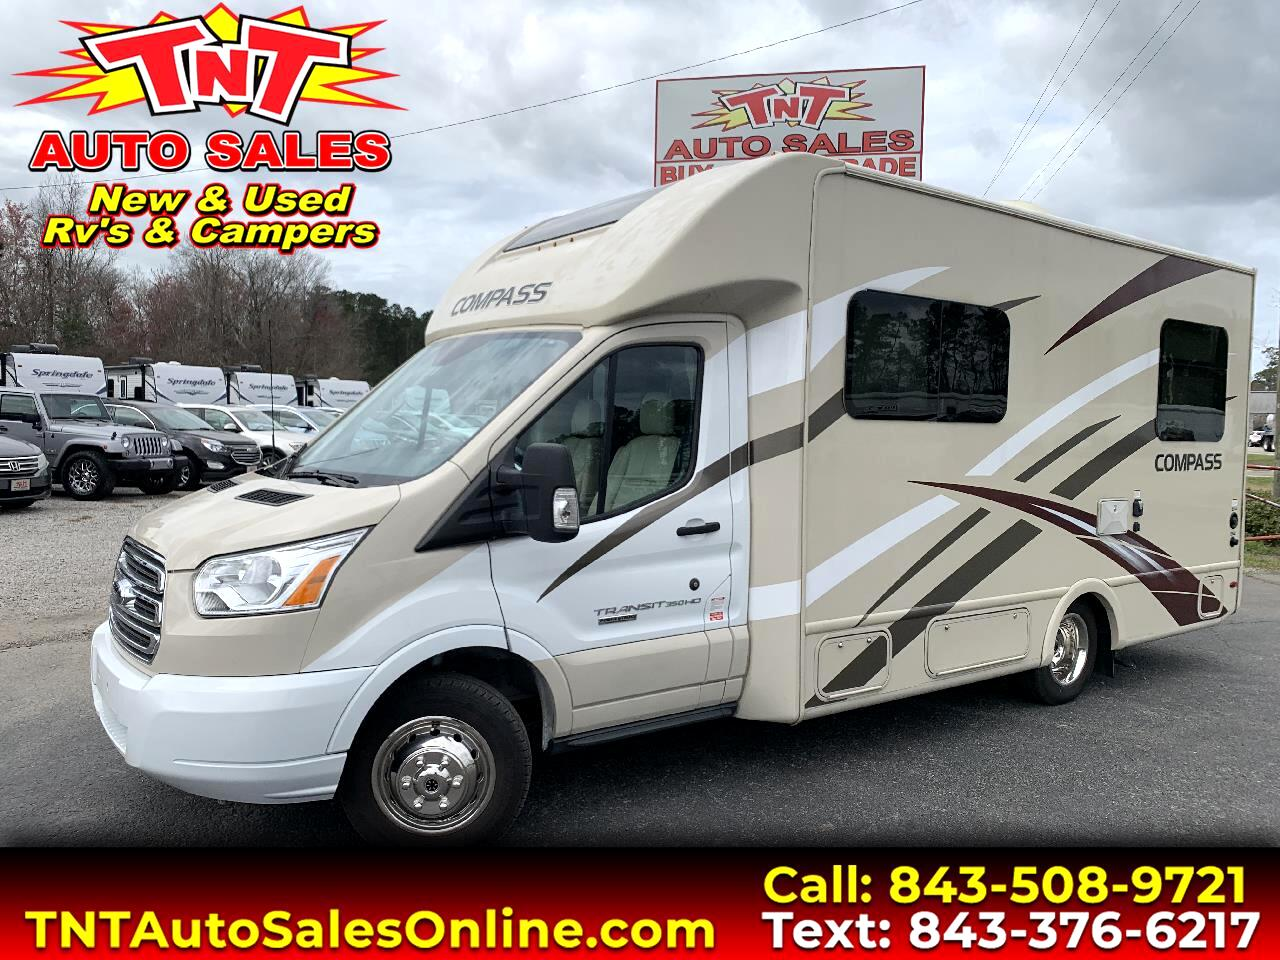 2017 Thor Motor Coach Compass 23 TR Turbo Diesel